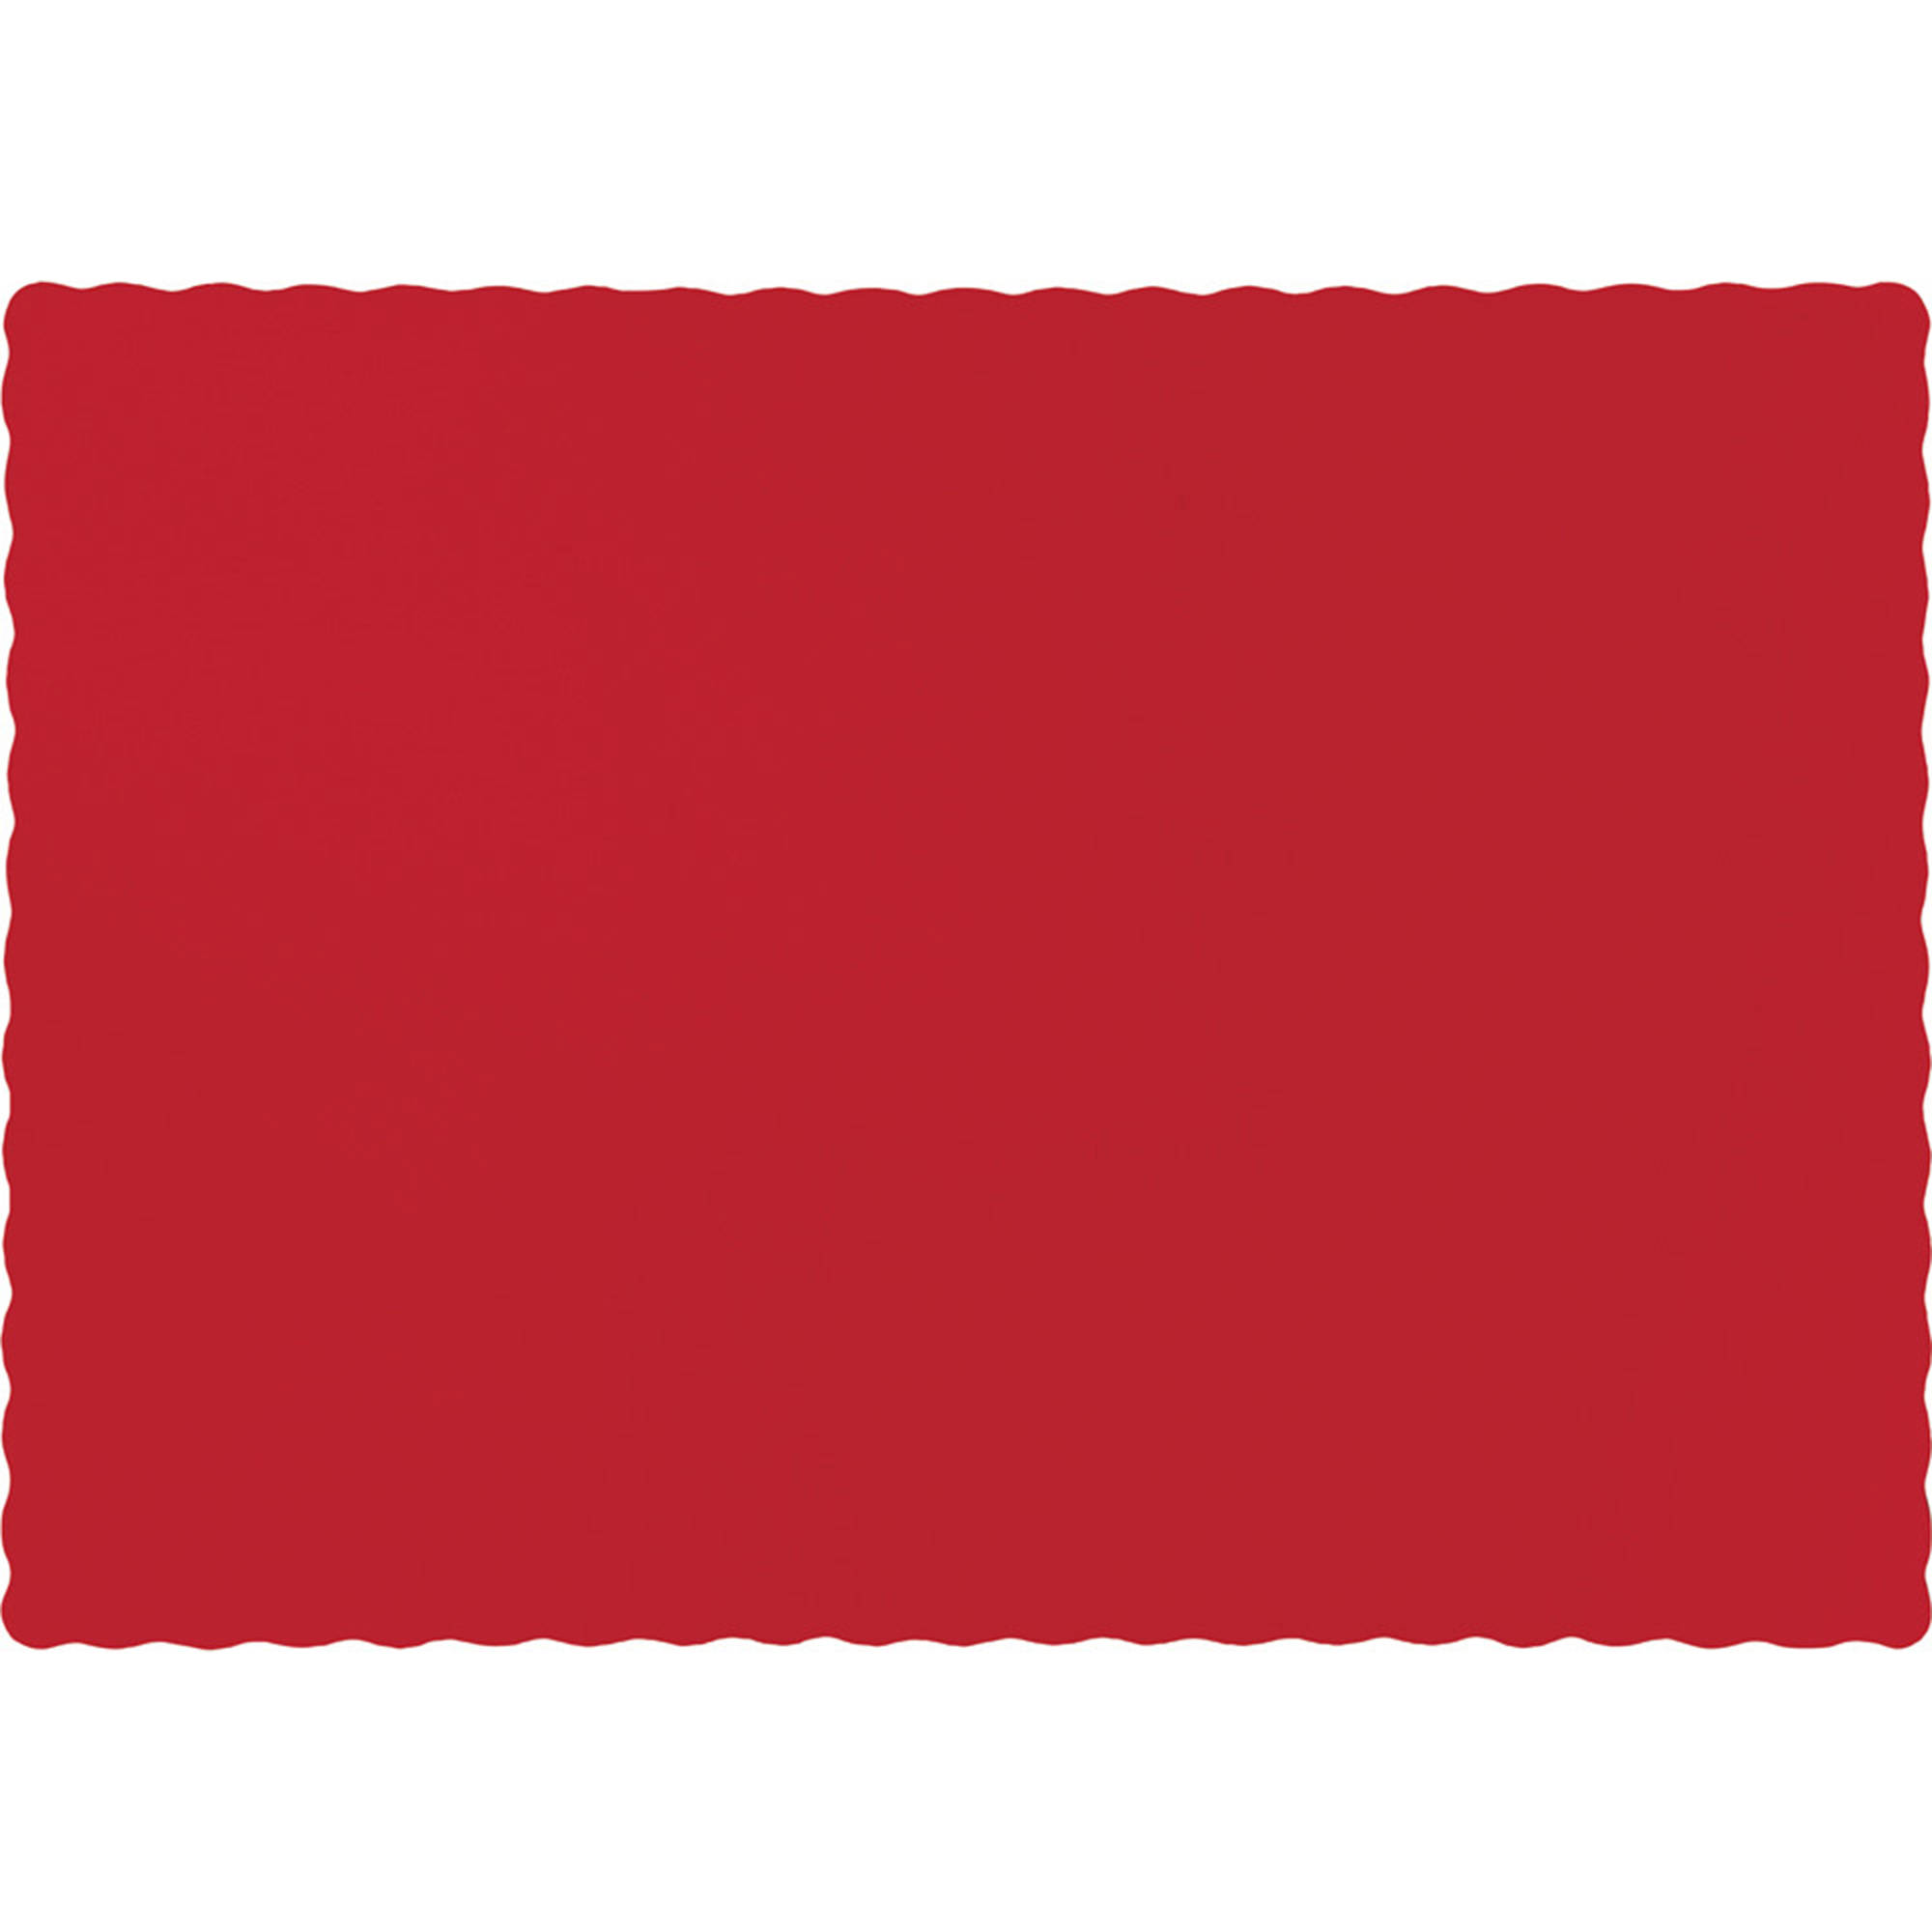 Classic Red Placemats, 50-Pack by CREATIVE CONVERTING